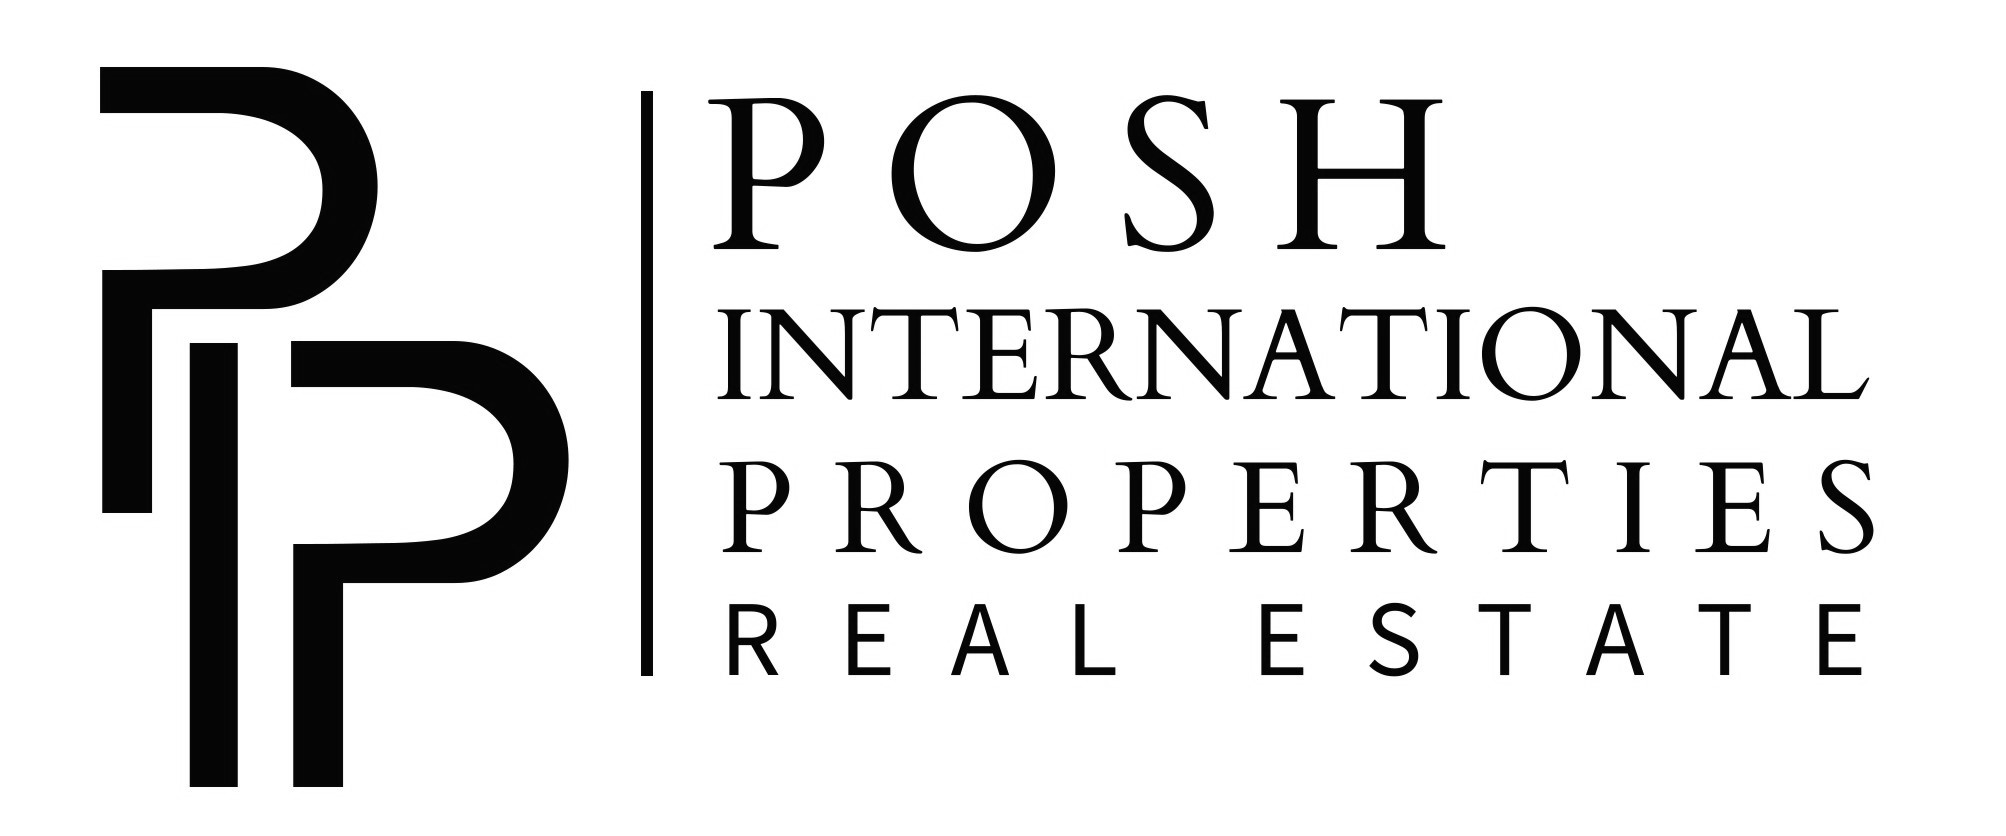 Posh International Properties - Immobilien Florida, Naples, Bonita Springs, Bonita Beach, Estero, Marco Island, Fort Myers Beach, Cape Coral, Fort Myers, Sanibel Island, Deutscher Immobilienmakler Florida, Makler, Hausmakler, Luxusmakler, Wohnungsmakler, Villenmakler, Luxusimmobilienmakler - Immobilien Florida USA